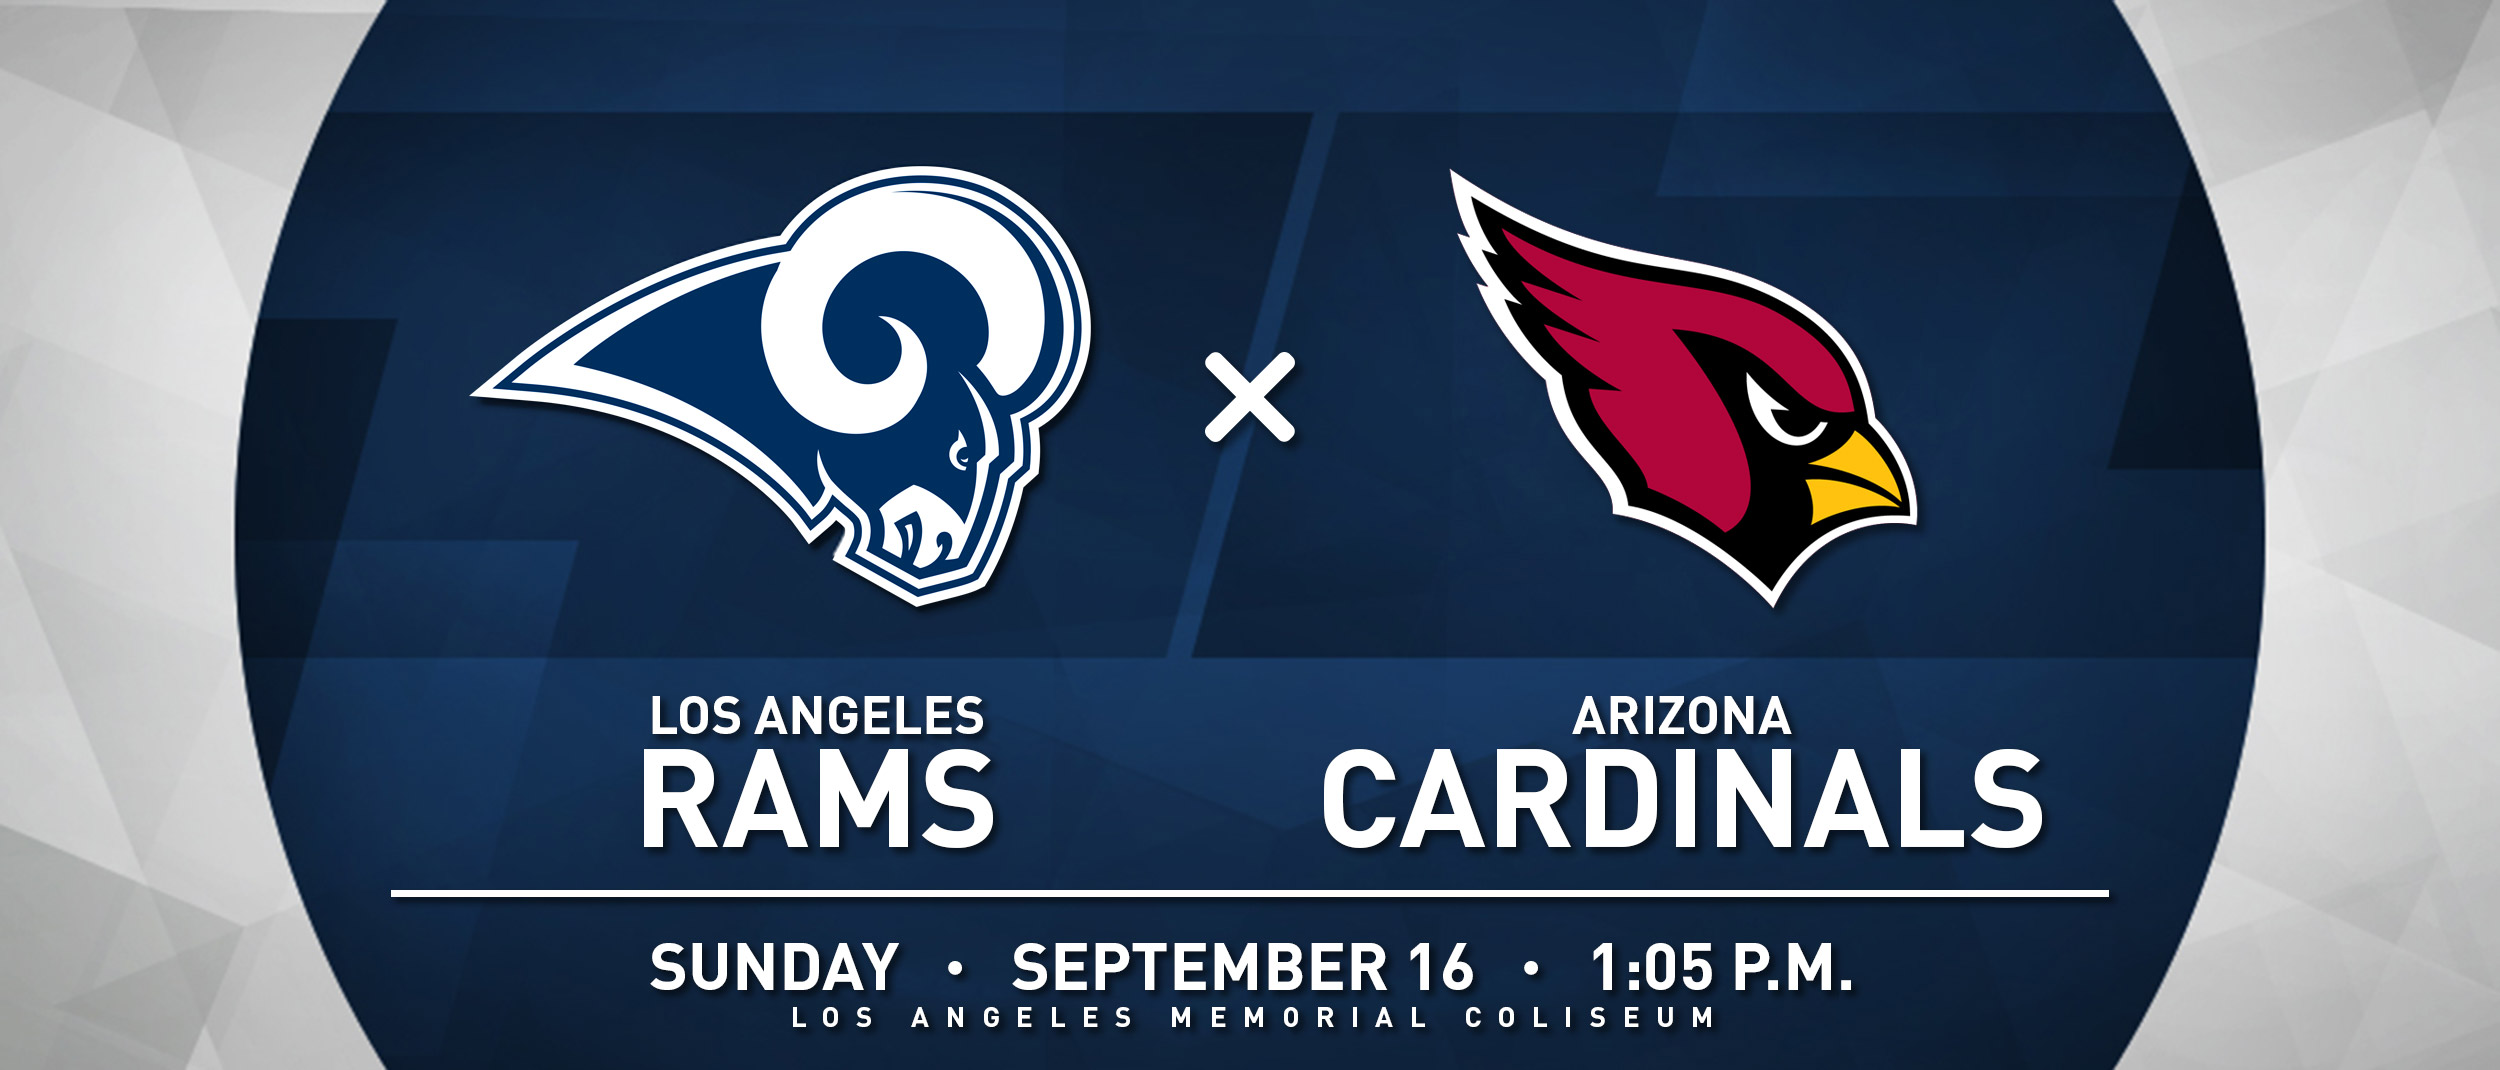 RAMS VS CARDINALS